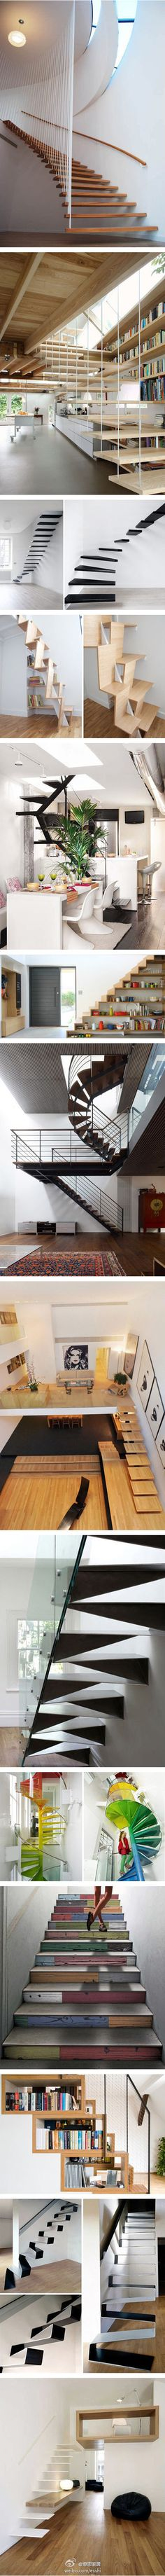 best scale images on Pinterest Modern stairs Stair design and